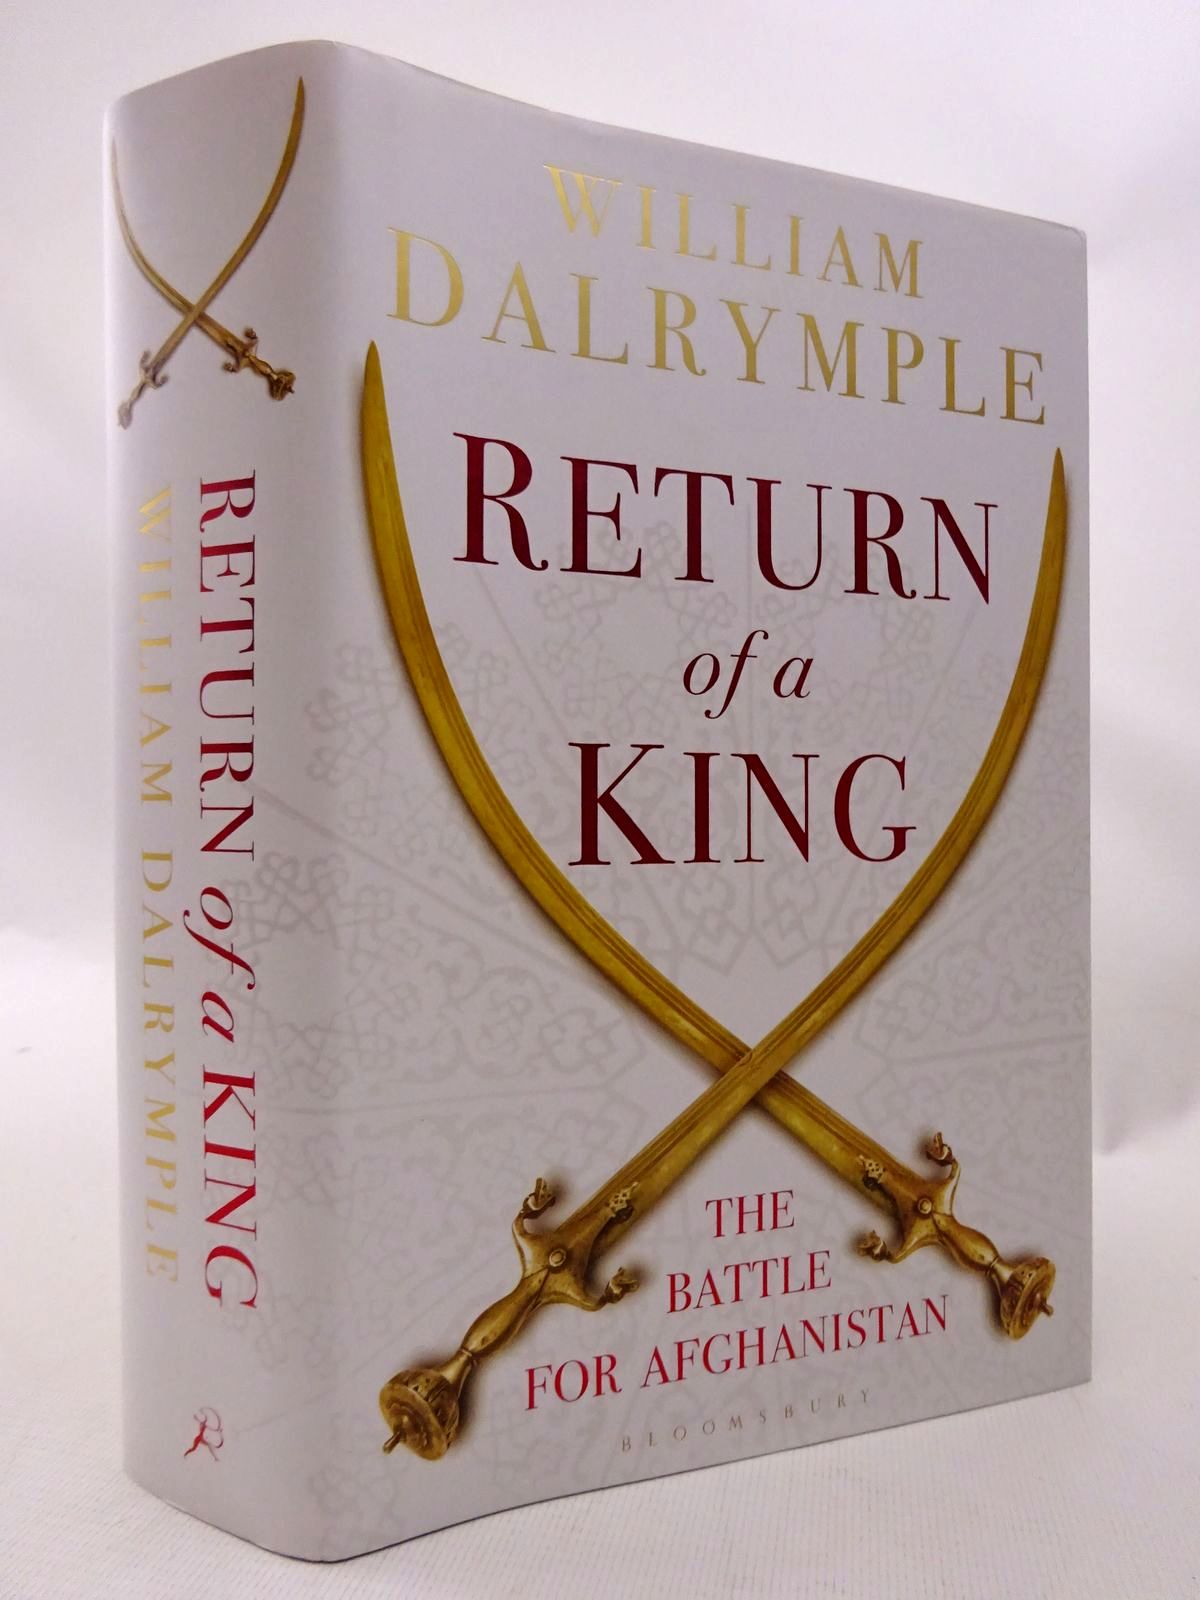 Photo of RETURN OF A KING: THE BATTLE FOR AFGHANISTAN written by Dalrymple, William published by Bloomsbury (STOCK CODE: 1815547)  for sale by Stella & Rose's Books